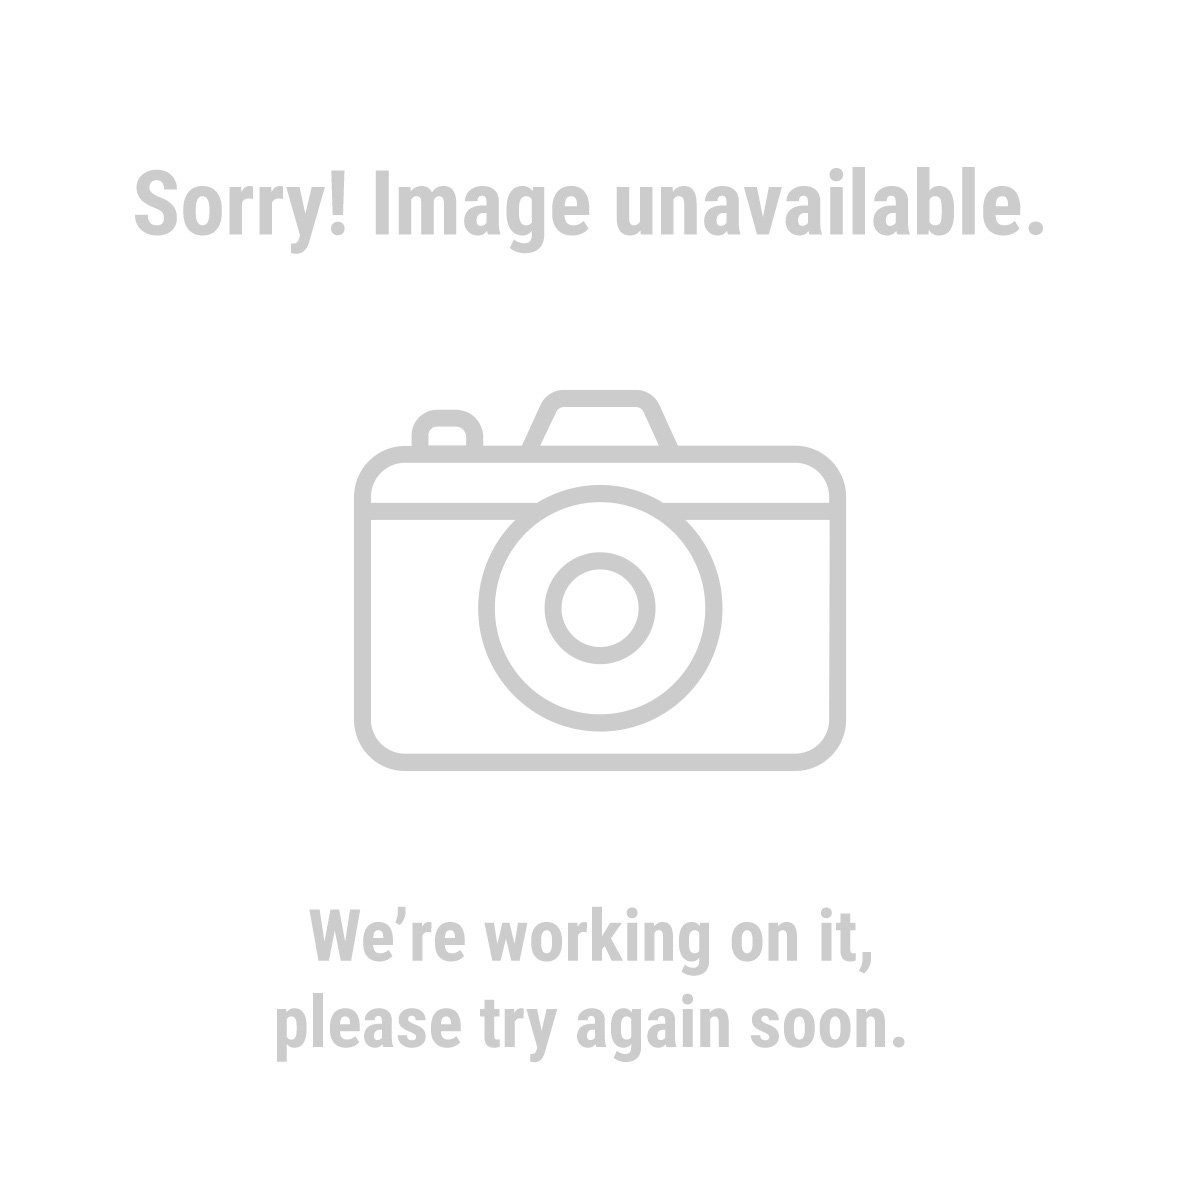 HFT® 91768 Super Strong Acrylic Wood Glue, 8 oz.